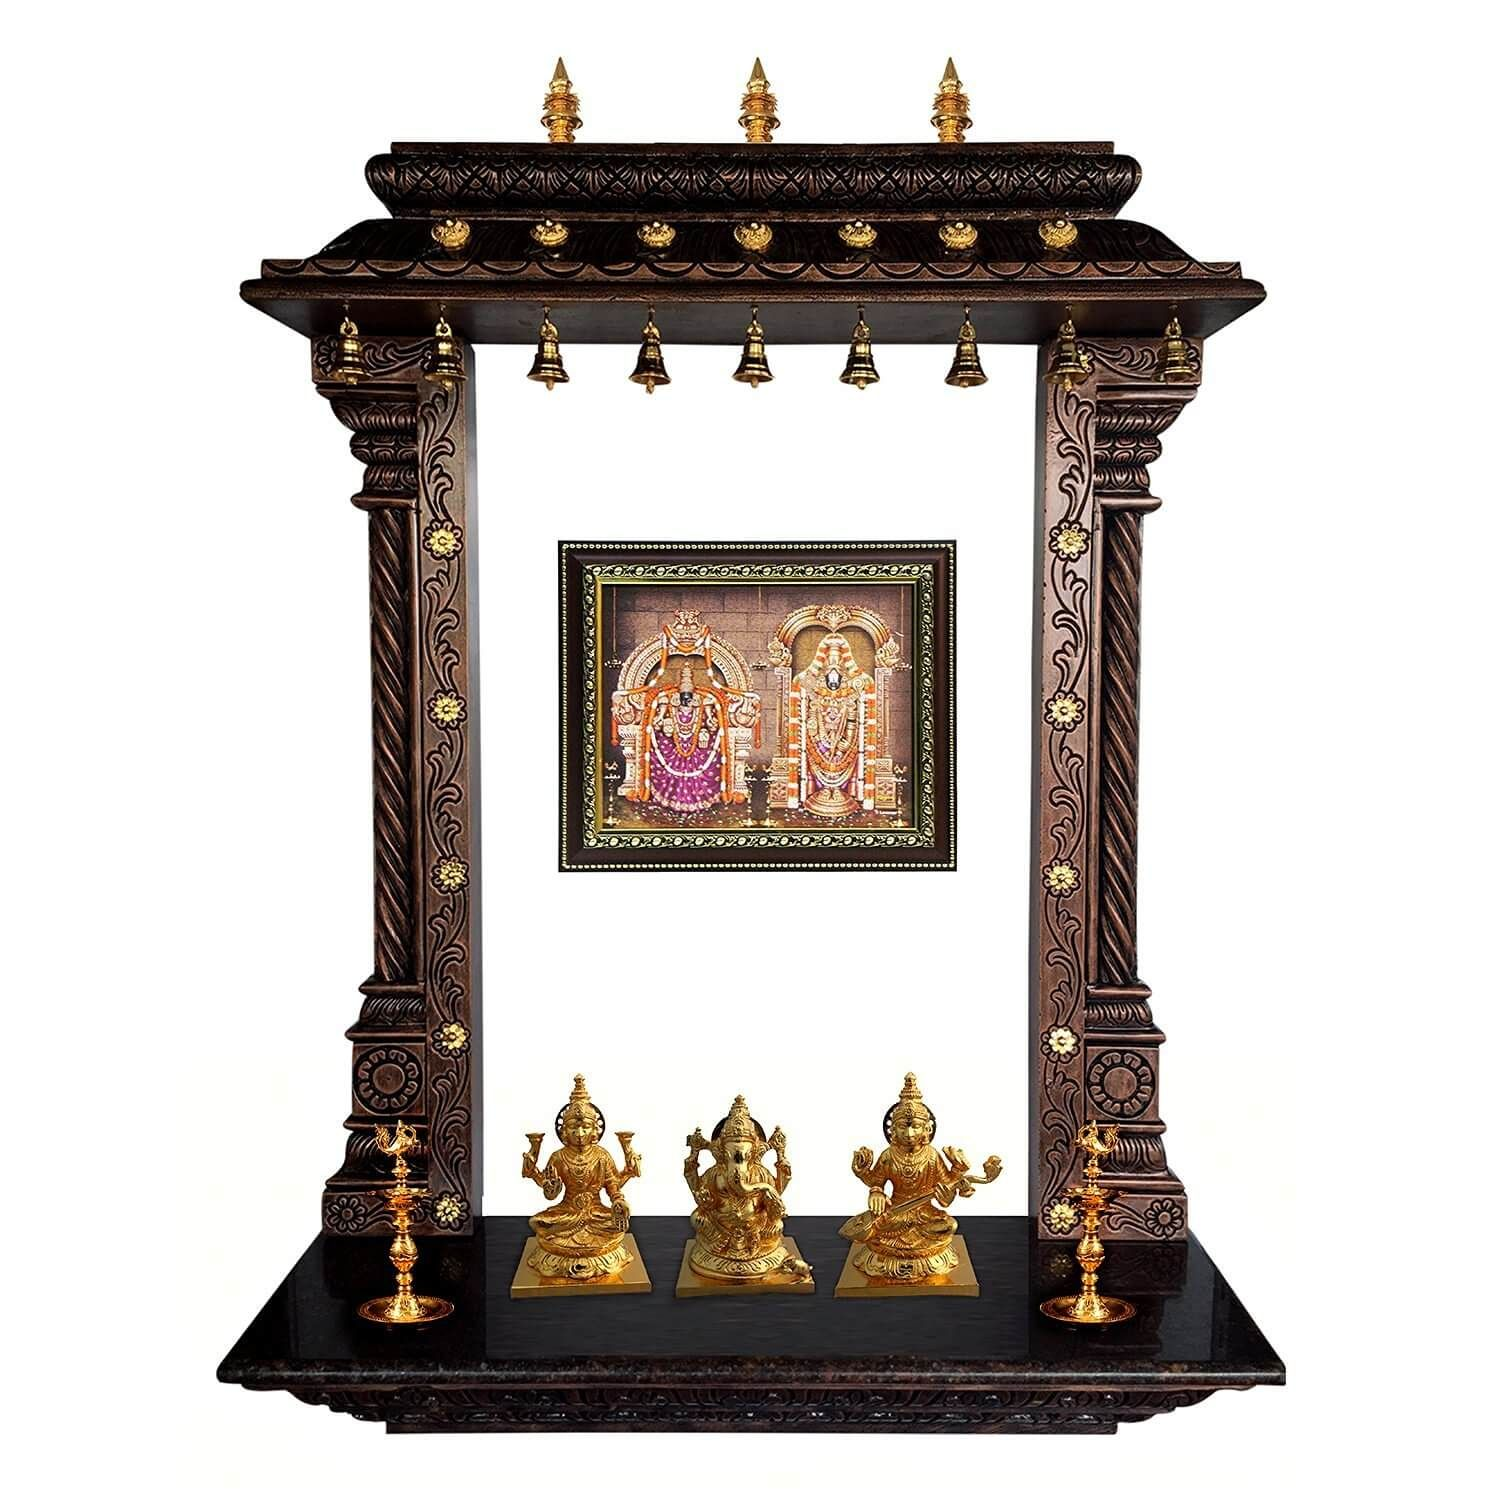 Awesome Wooden Pooja Mandir Designs For Home Frieze - Home ...